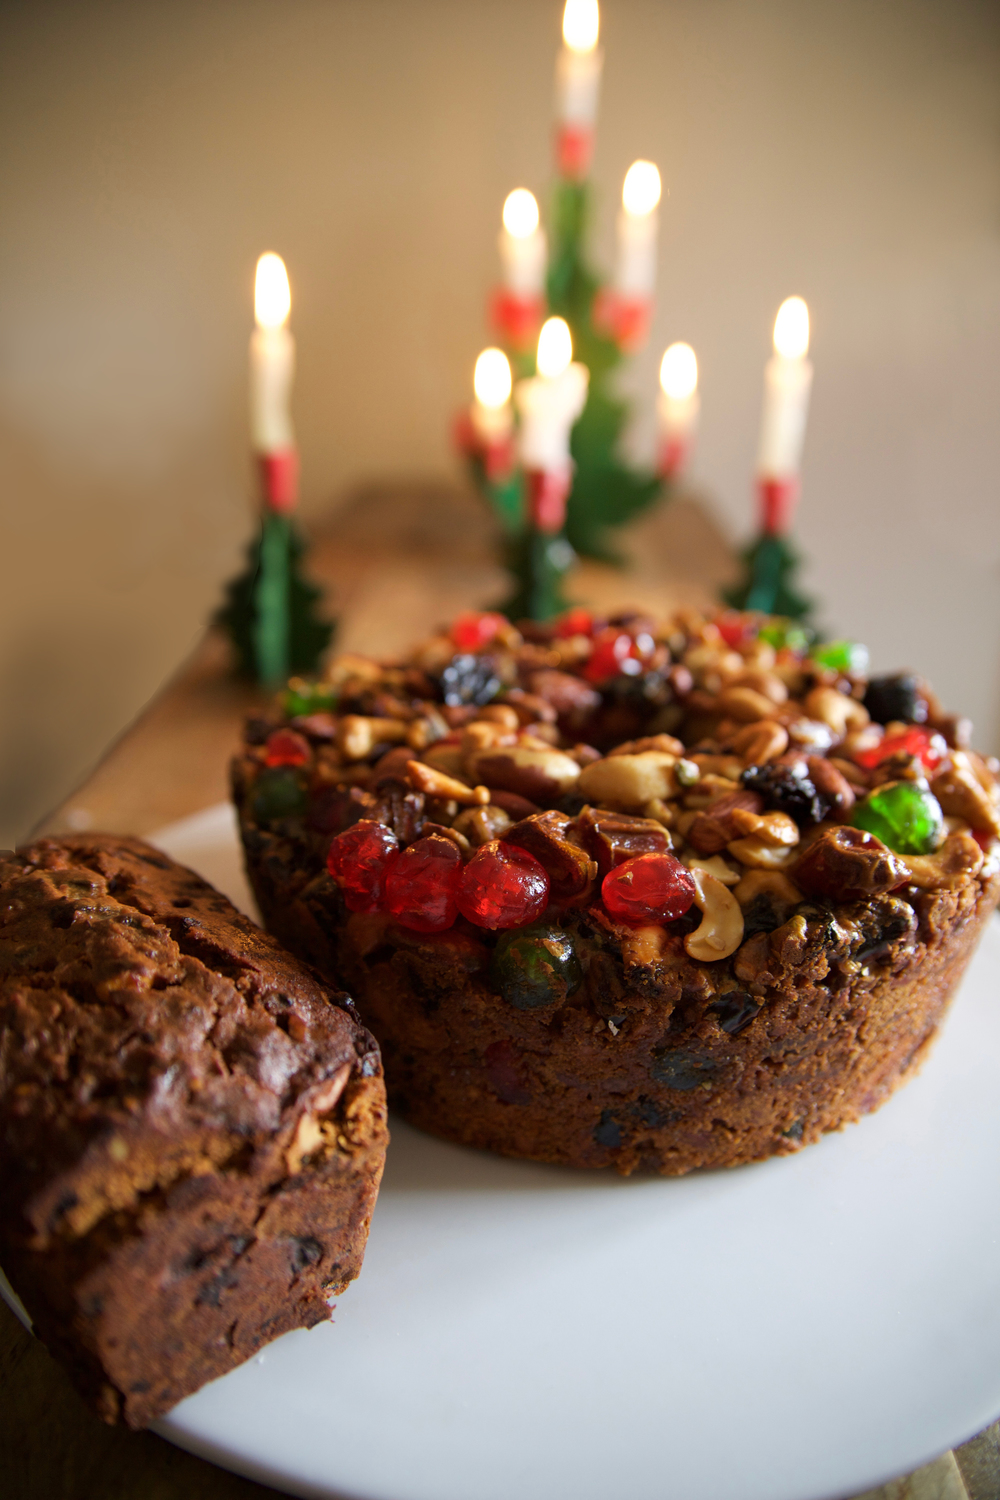 Left: Nigel Slater's Christmas Cake. Right: Good Housekeeping (?) Fruitcake